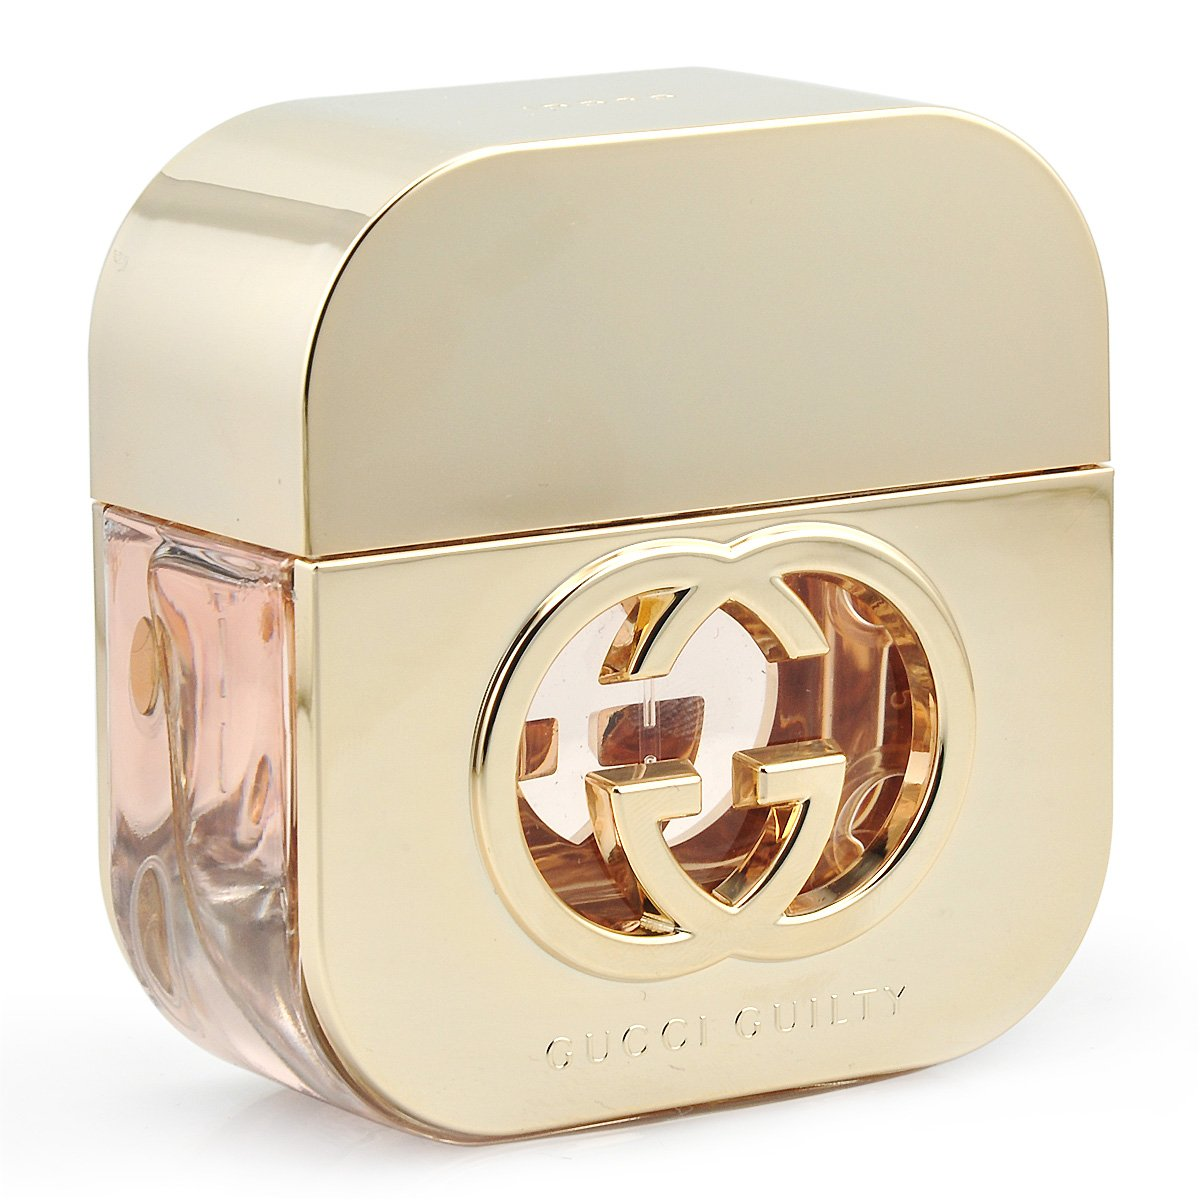 $40 (was $69.99) Gucci Guilty by Eau-de-toilette Spray for Women, 1.70-Fluid-Ounce